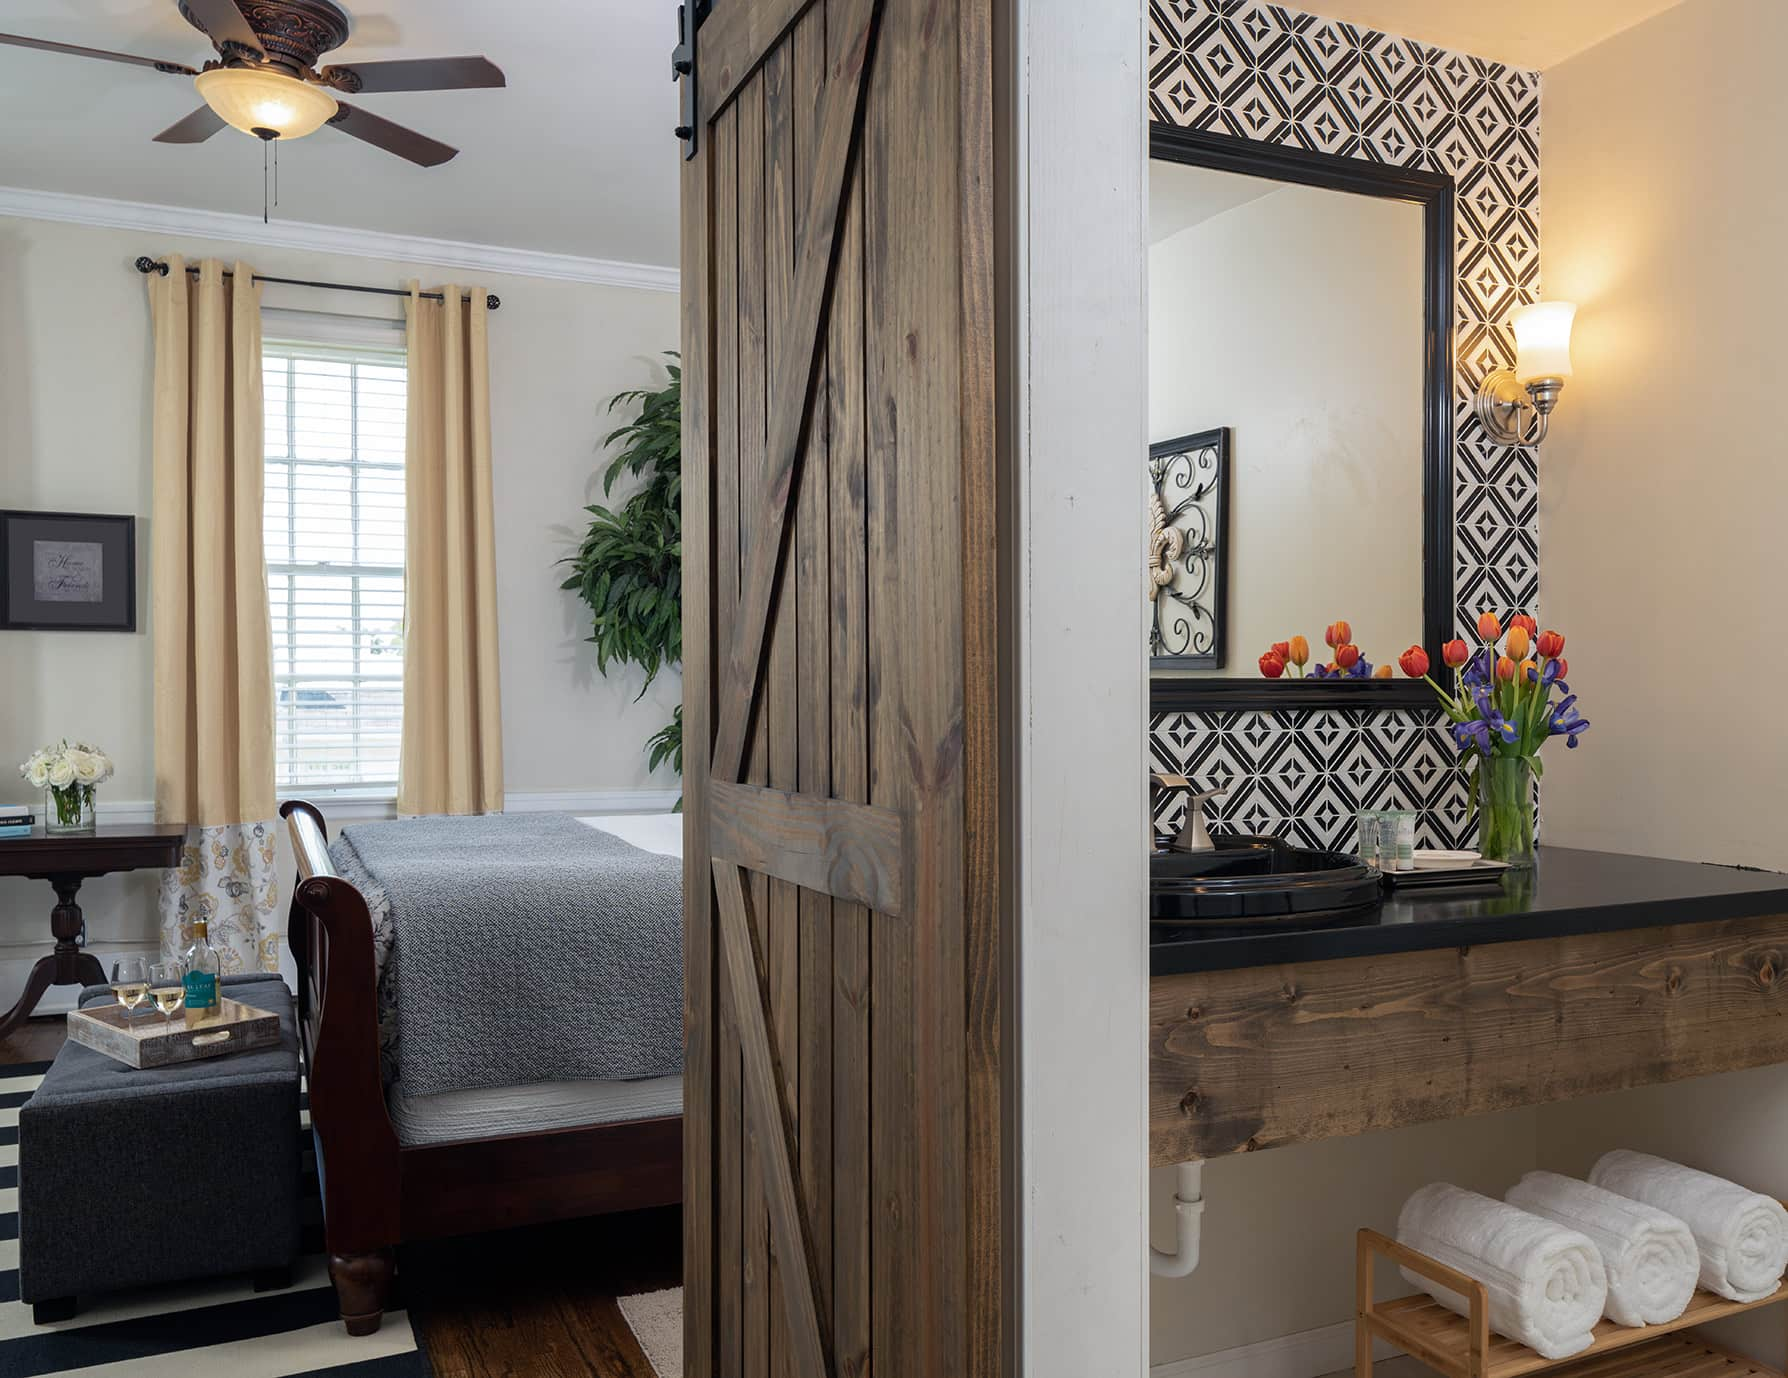 The Wellington room bed and bathroom